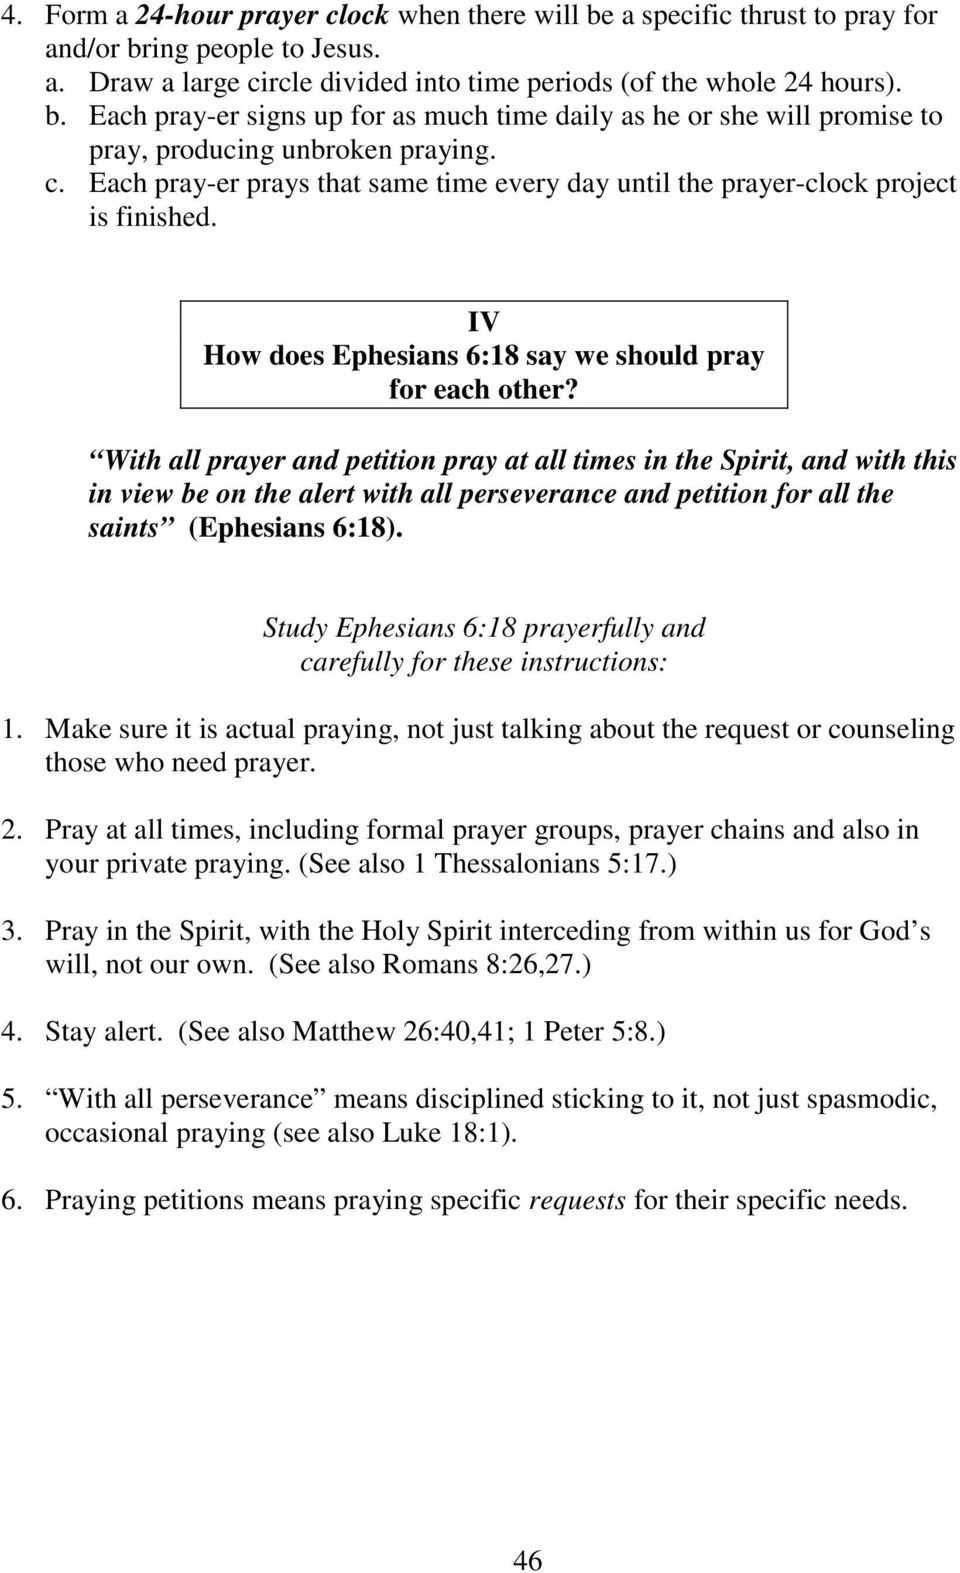 With all prayer and petition pray at all times in the Spirit, and with this in view be on the alert with all perseverance and petition for all the saints (Ephesians 6:18).